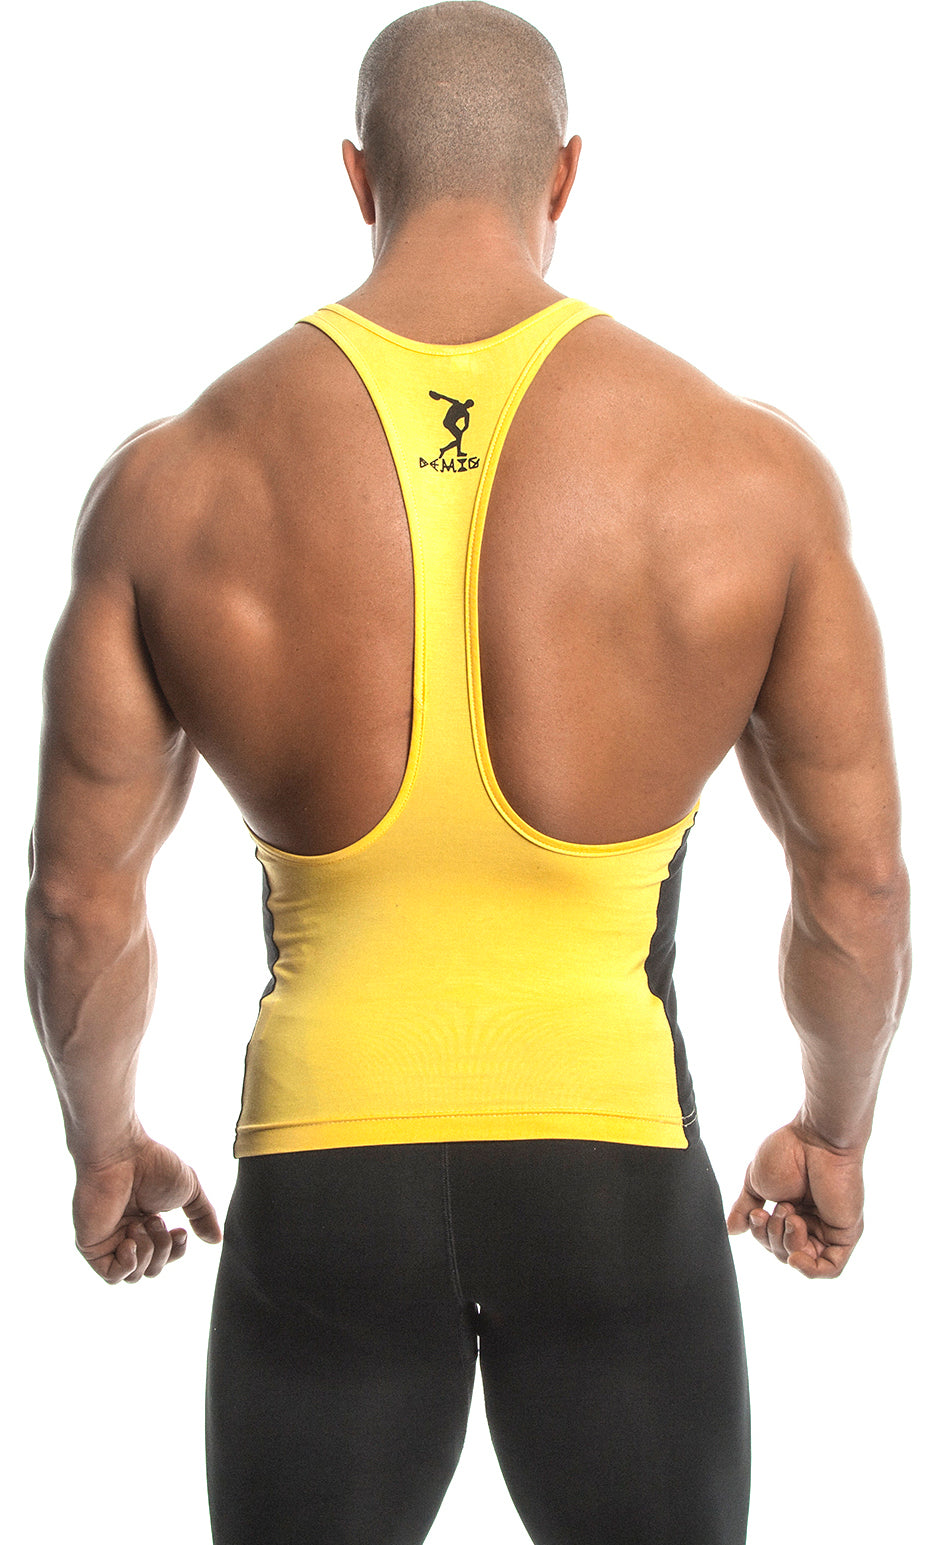 Tank Top (Yellow/Black) - Bamboo/Elastin Fiber - DEMIG